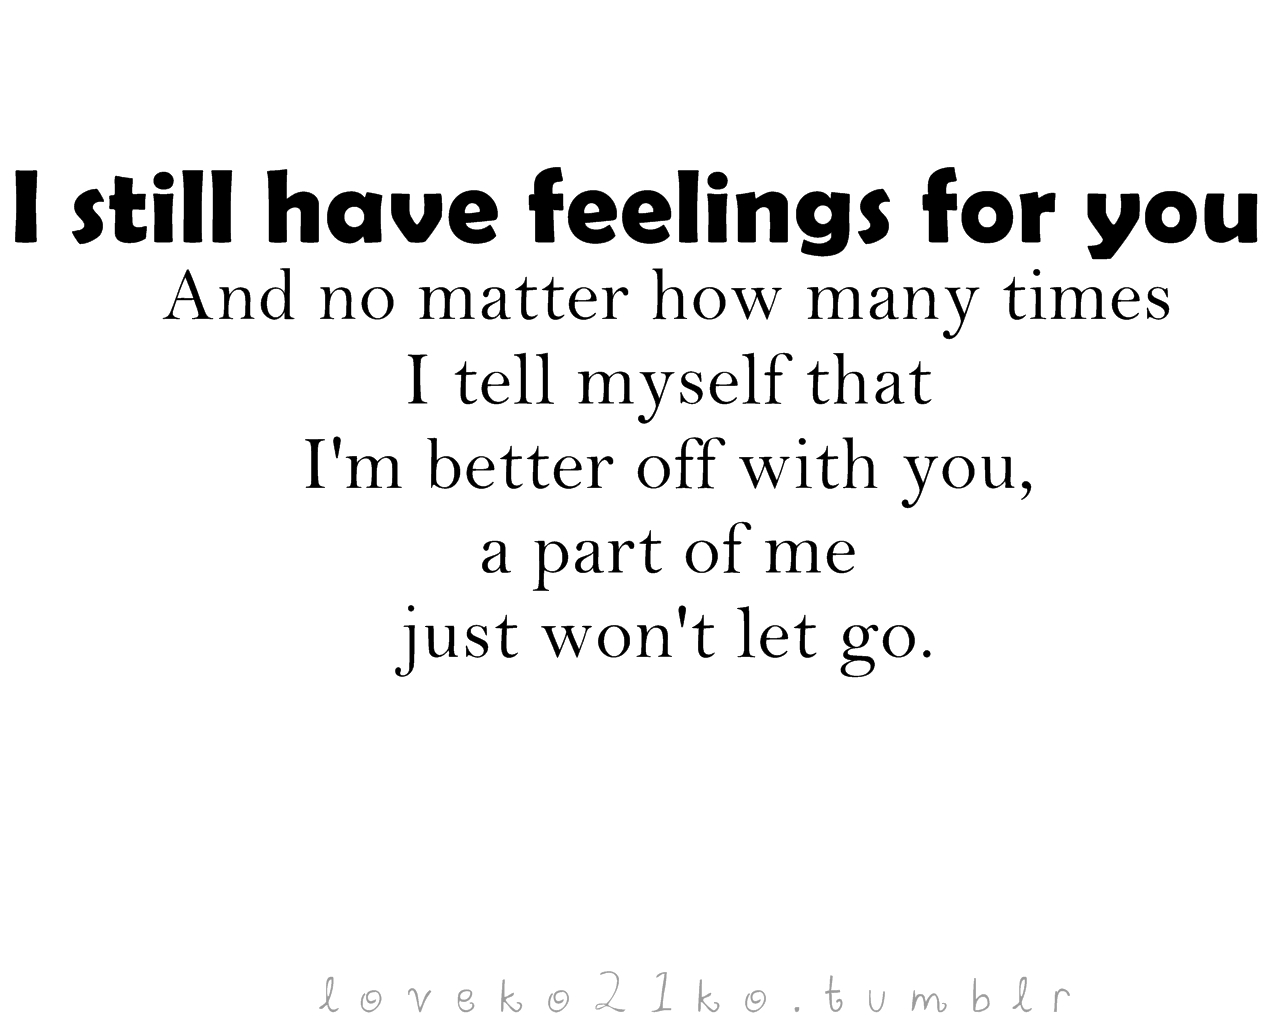 I Still Have Feelings For You And No Matter How Many Times I Tell Myself That I'm Better Off With You, A Part of Me Just Won't Let Go